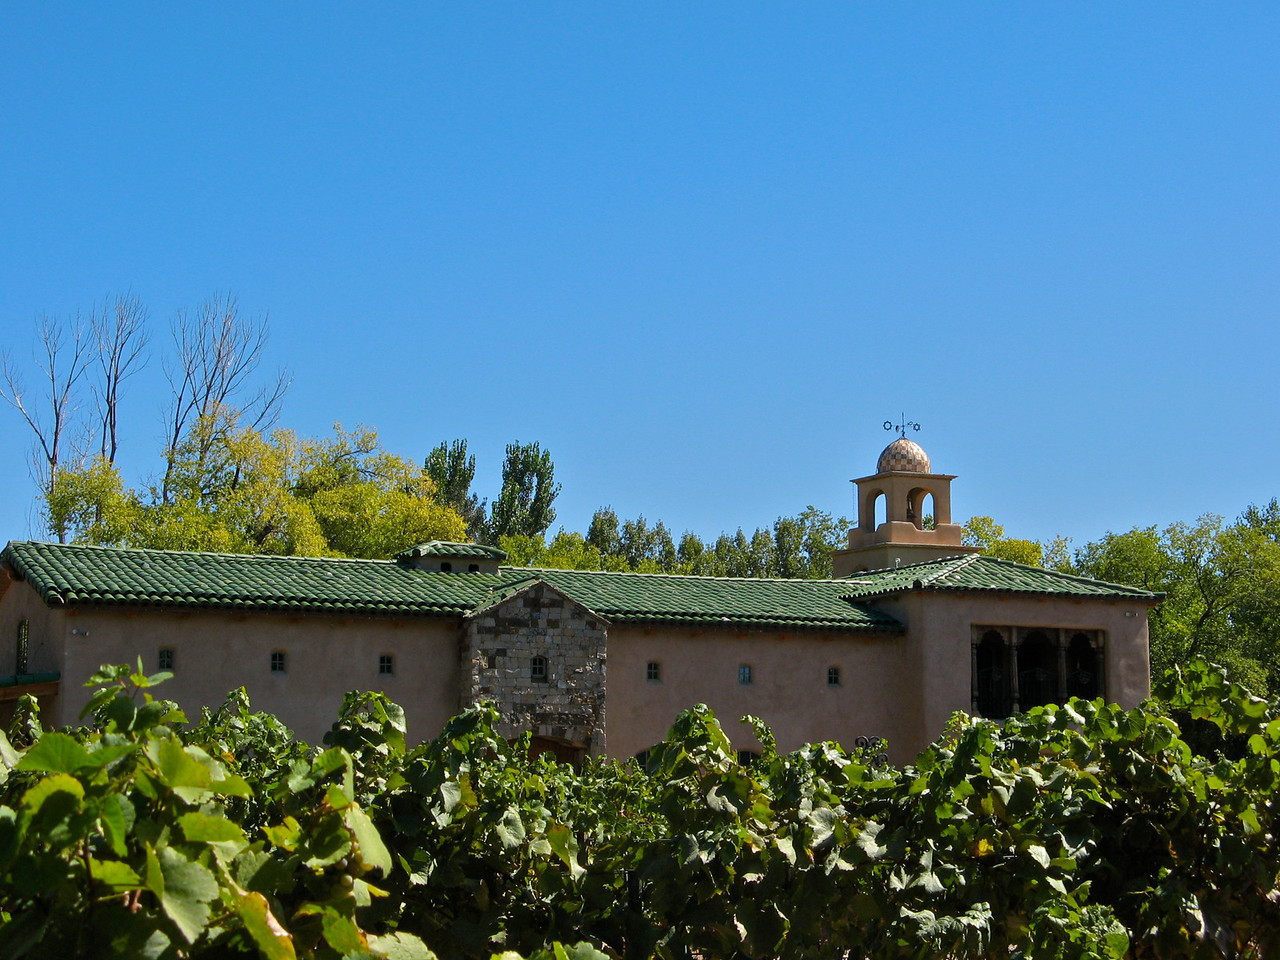 The winery has a large tasting room and is open throughout the week.